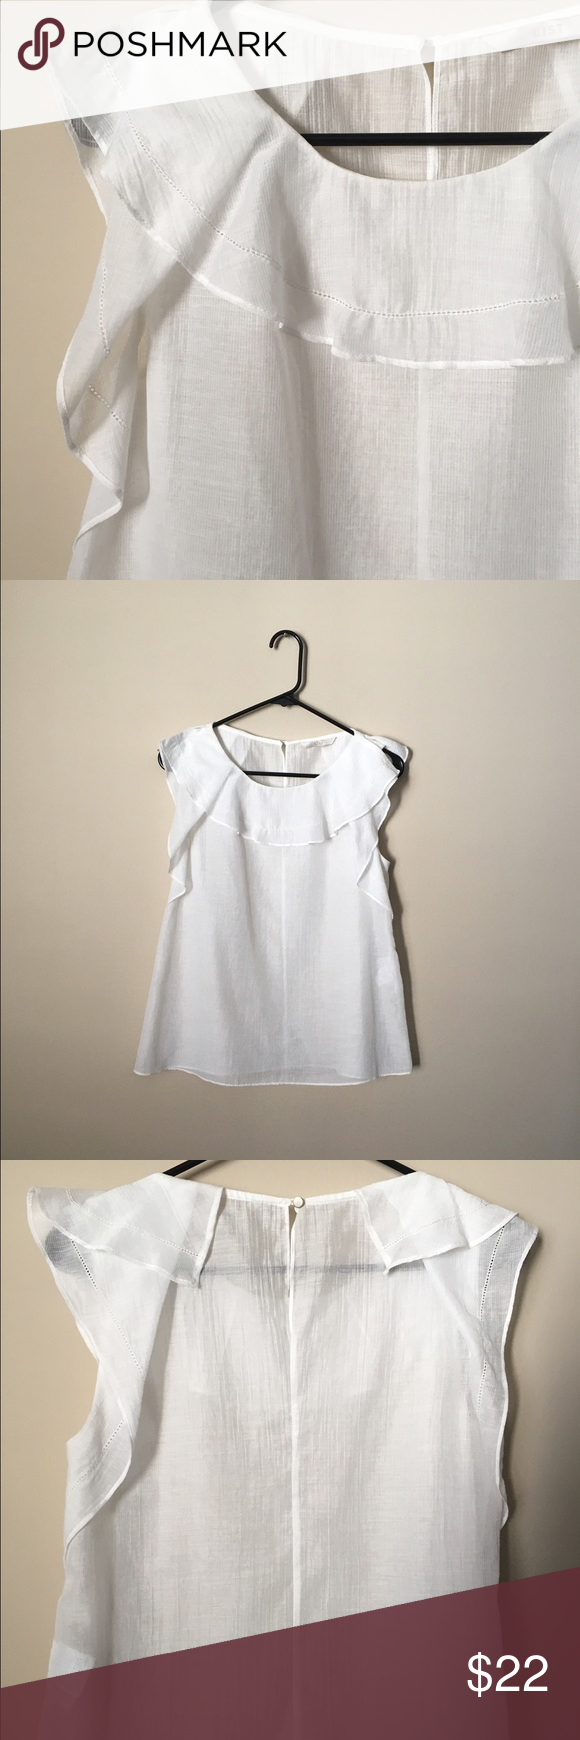 White blouse Beautiful white flowing blouse. A soft linen material. No size tag but I would recommend for a small or medium Tops Blouses